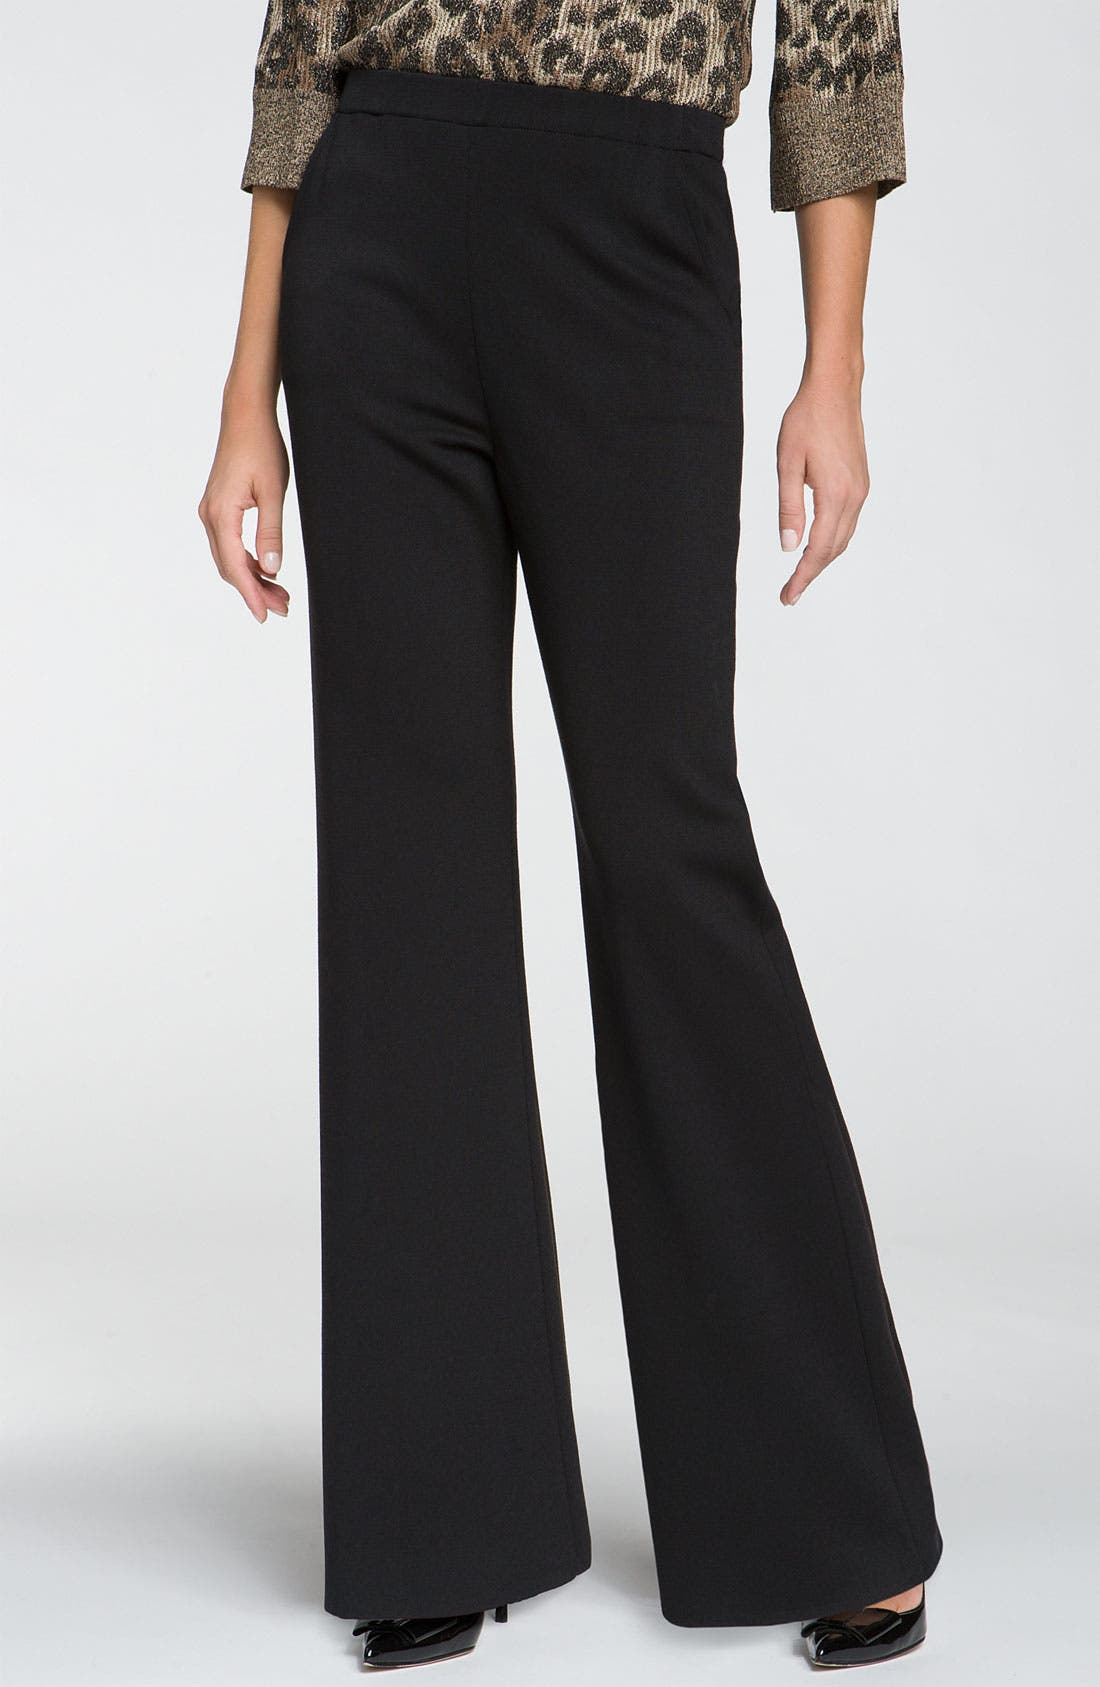 Alternate Image 1 Selected - St. John Collection Milano Knit Pants